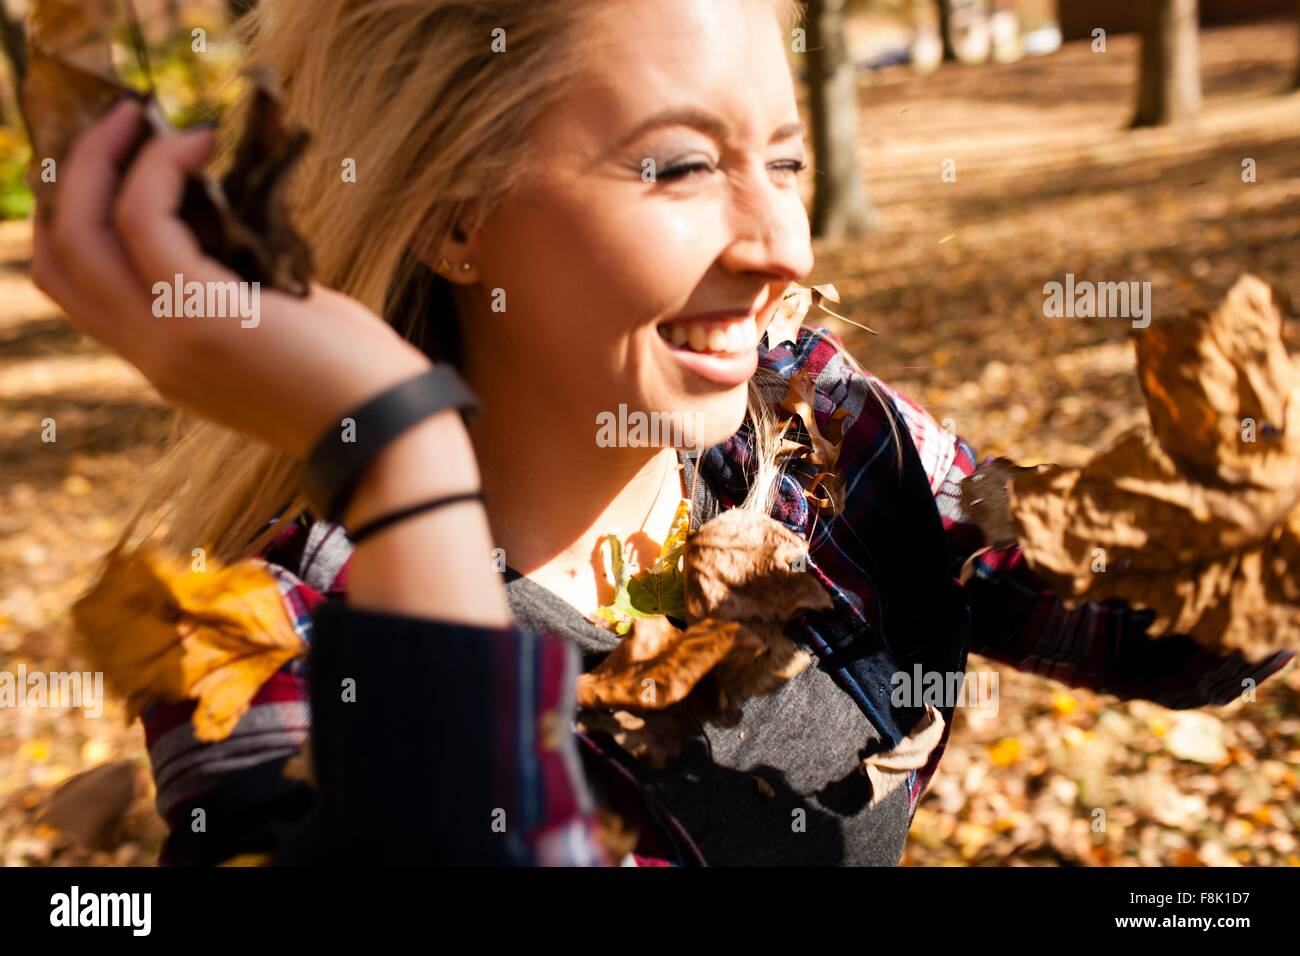 Young woman throwing autumn leaves in forest - Stock Image